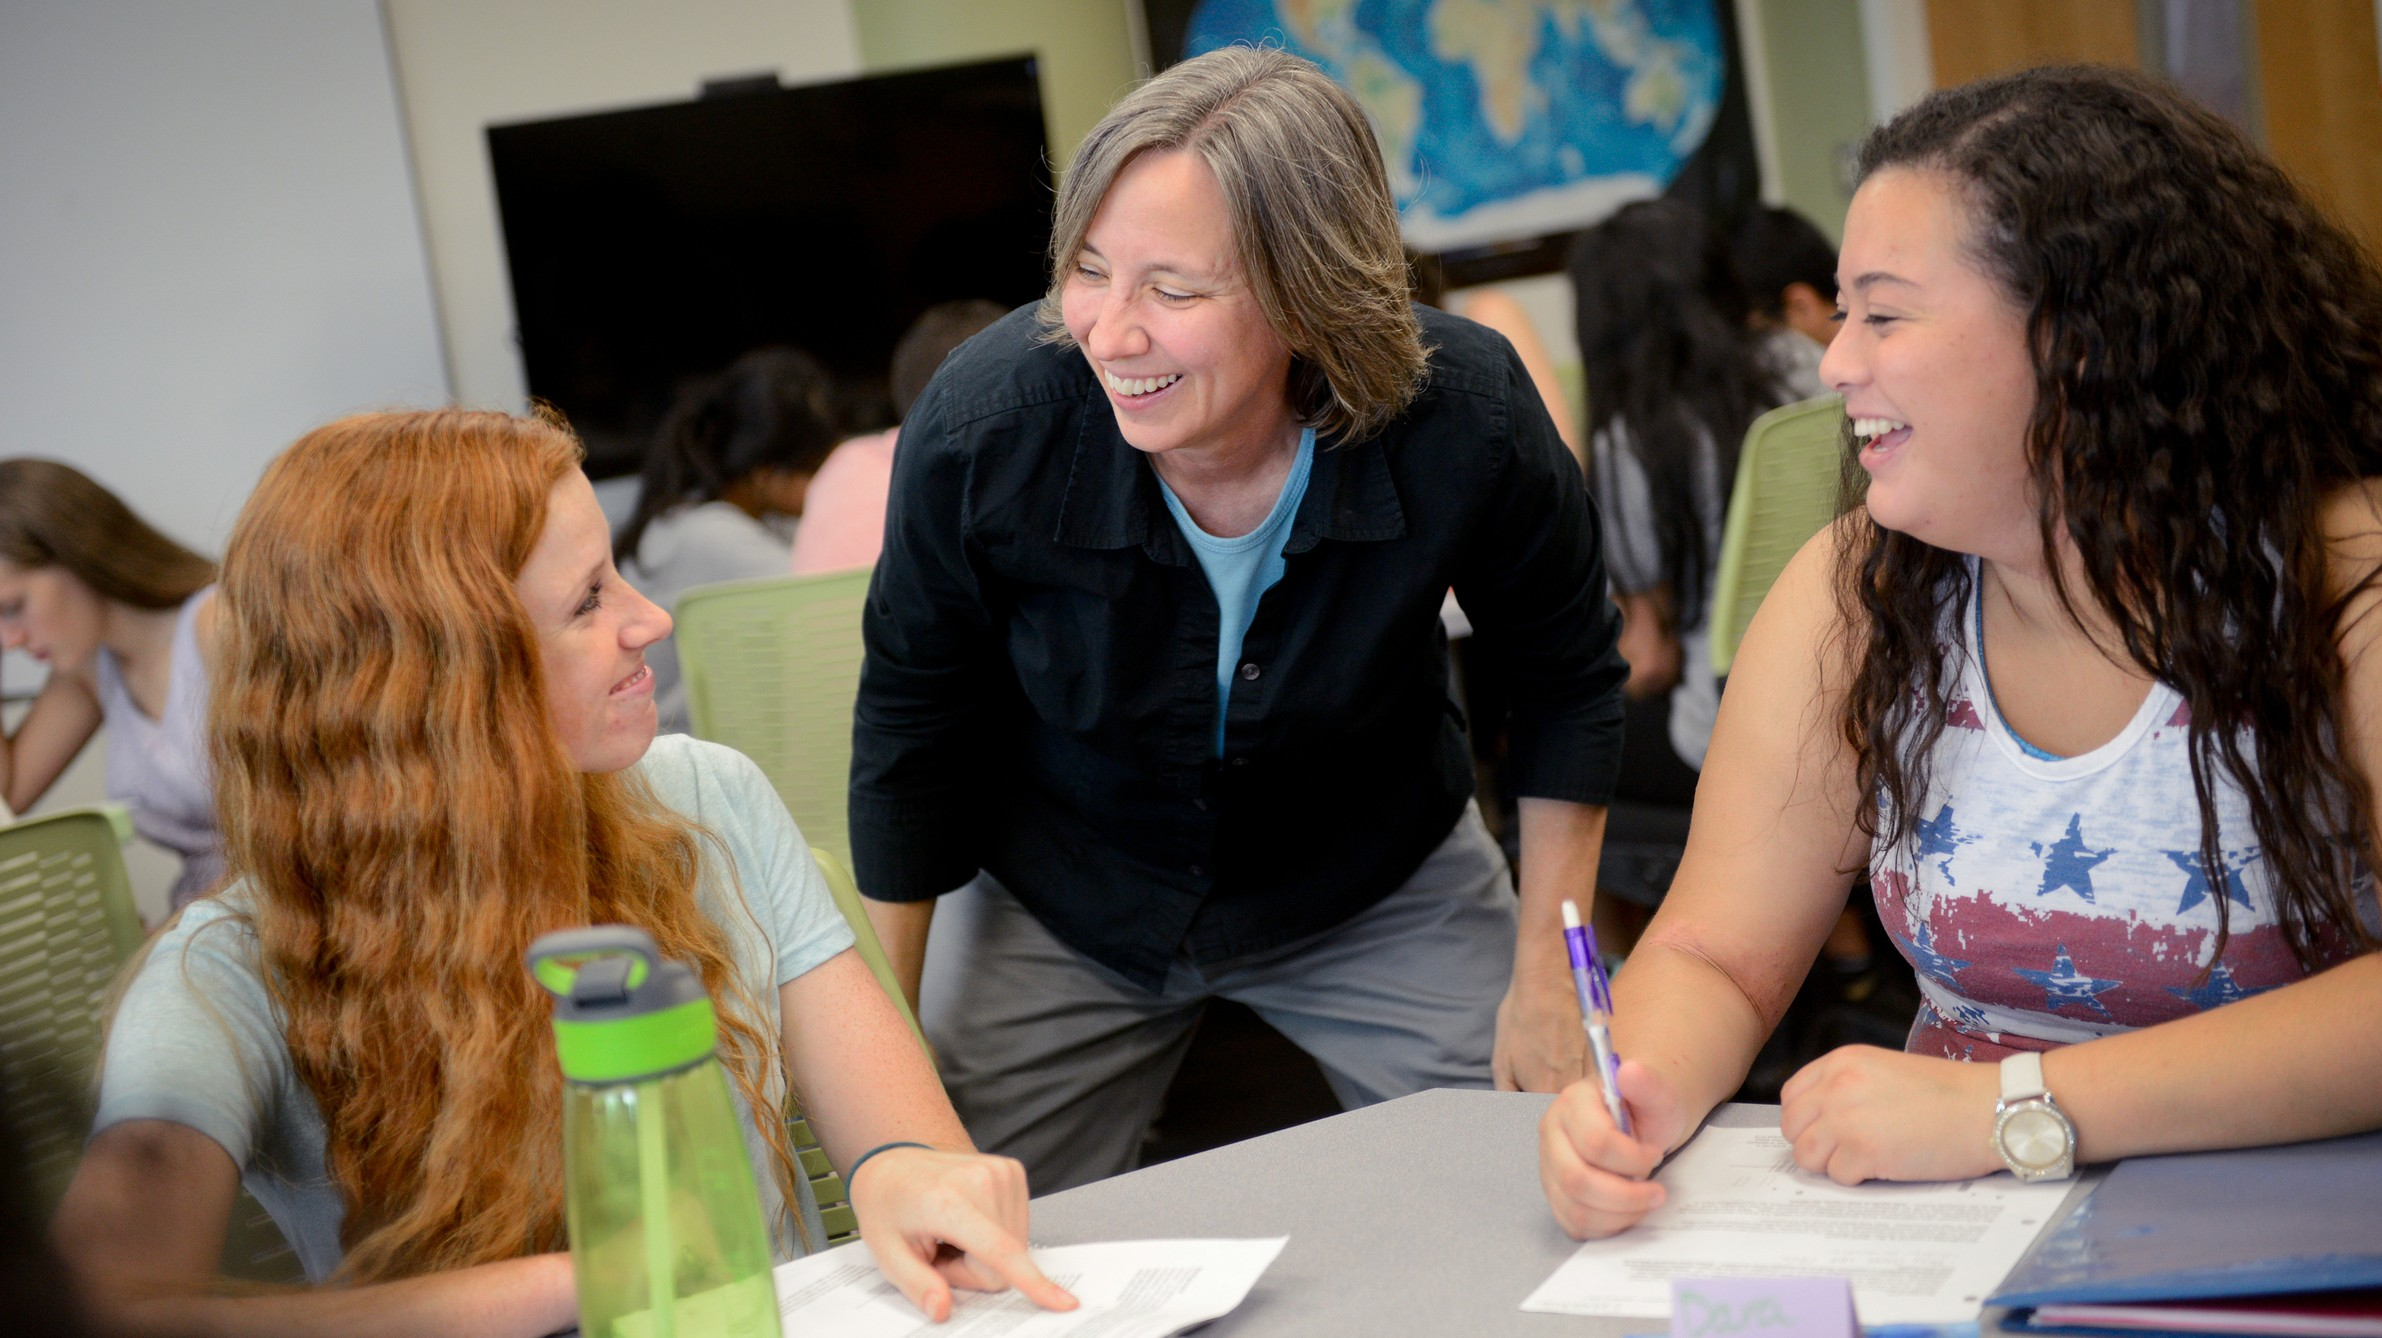 Professor helping first-year students